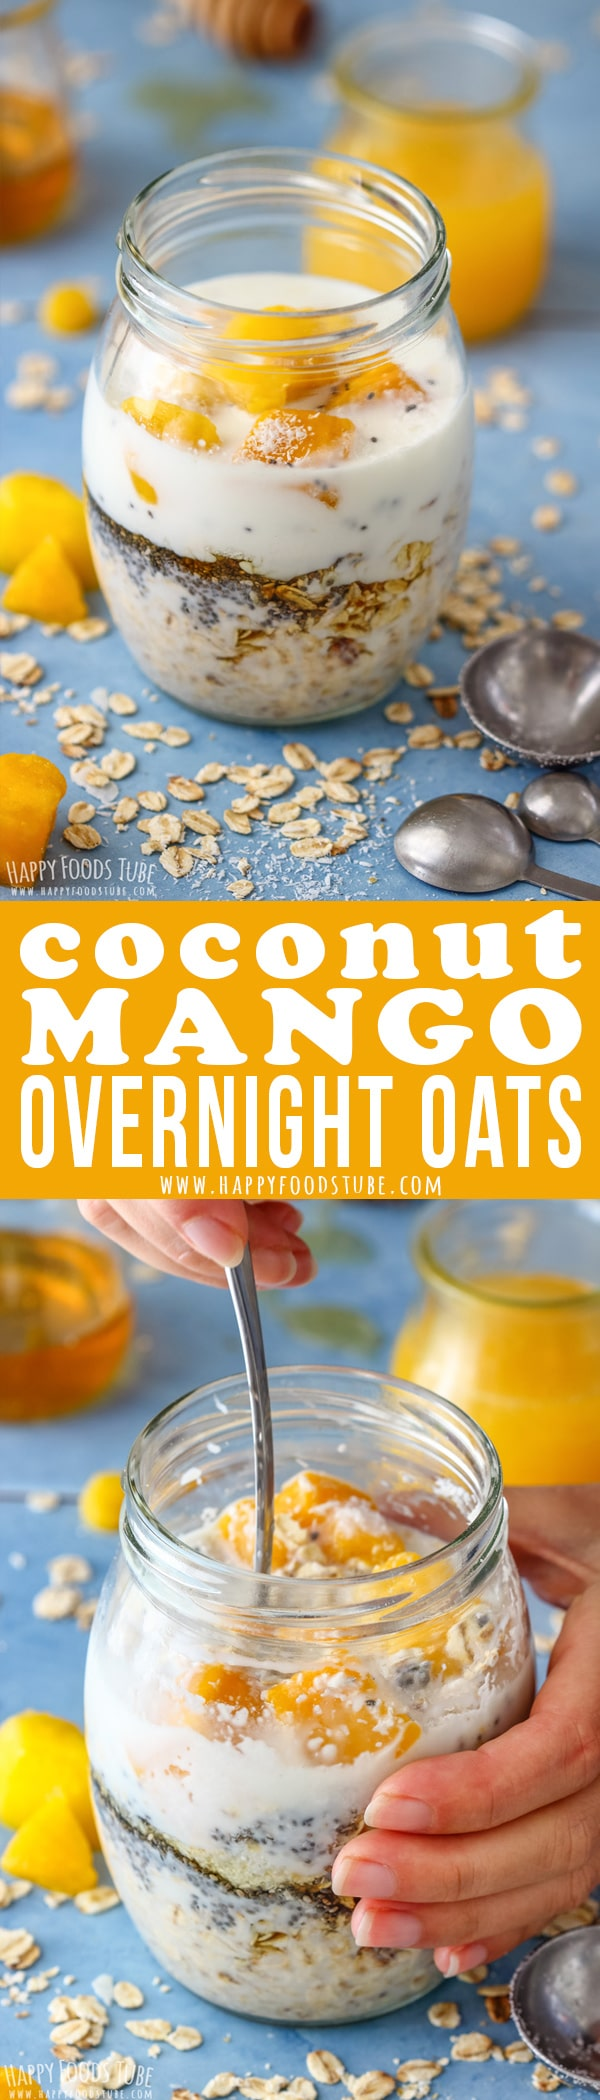 Coconut Mango Overnight oats is the perfect breakfast for people on the go, busy families or anyone who loves fuss-free breakfast. Fill a jar, place it in the fridge and enjoy the following morning. #coconut #mango #overnightoats #healthy #breakfast #oats #recipe #vegetarian #slimmingworld #jar